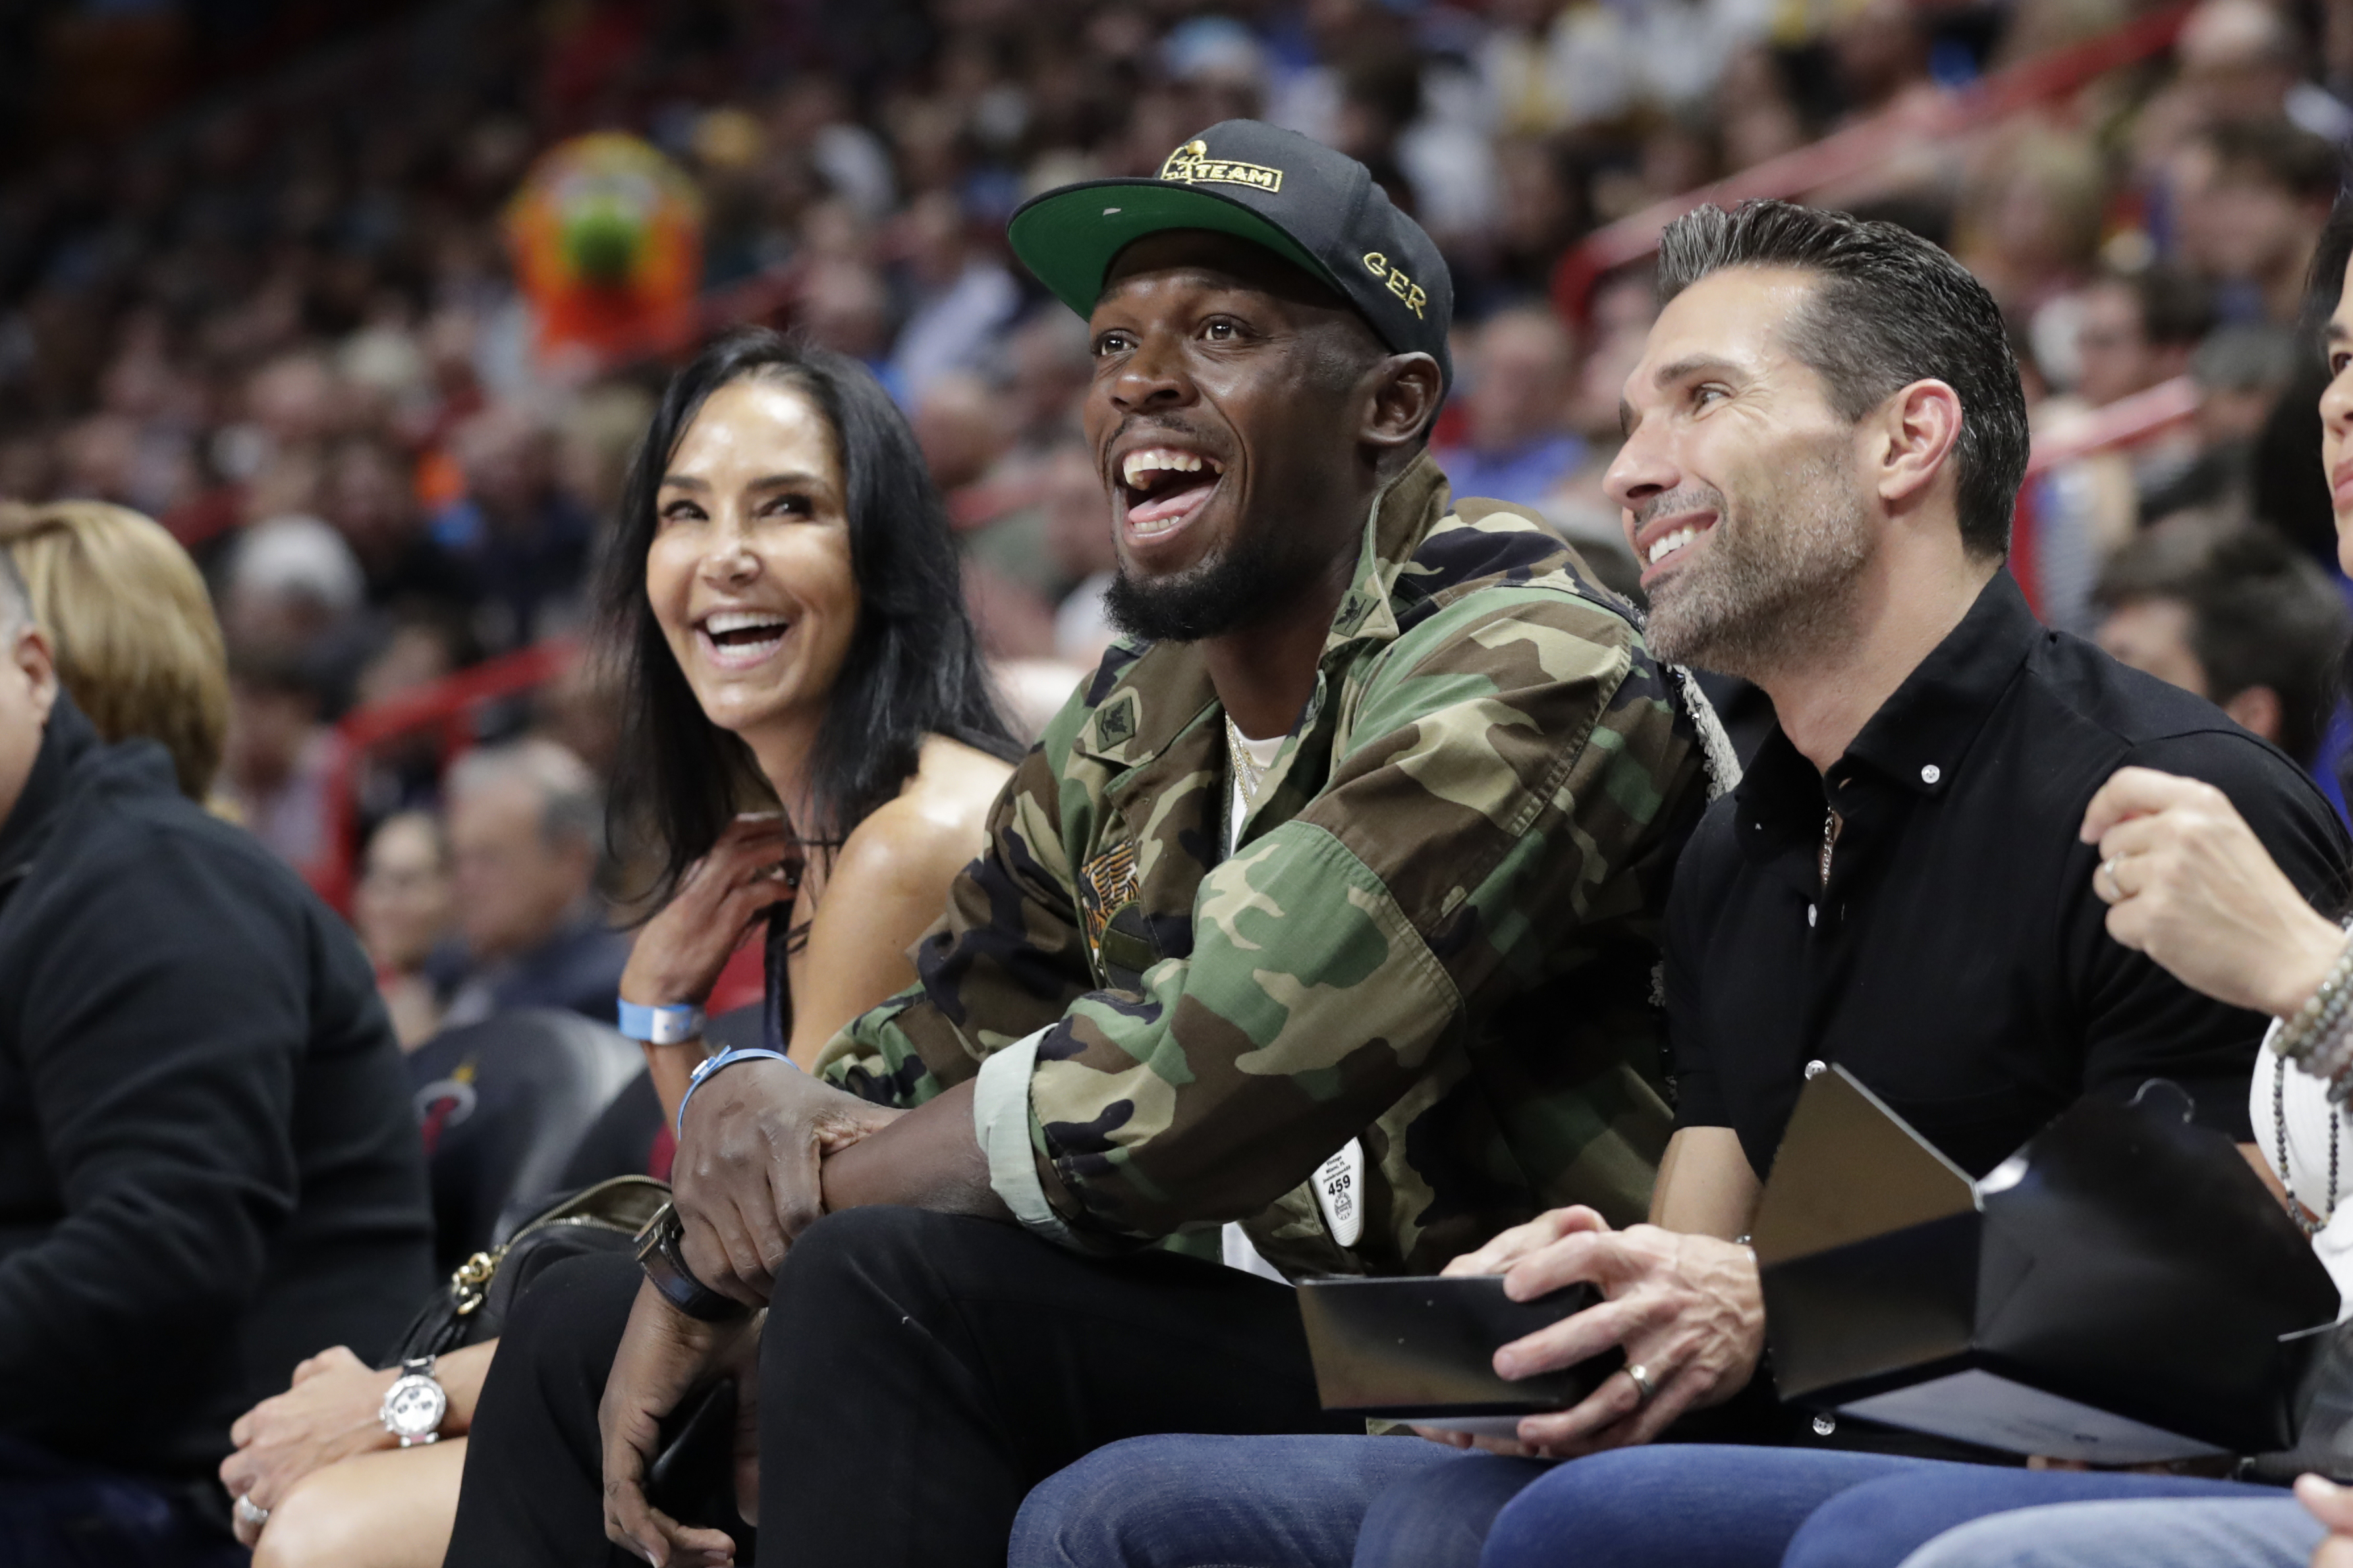 Usain Bolt watches during the first half of an NBA basketball game between the Miami Heat and Los Angeles Lakers, Friday, Dec. 13, 2019, in Miami.